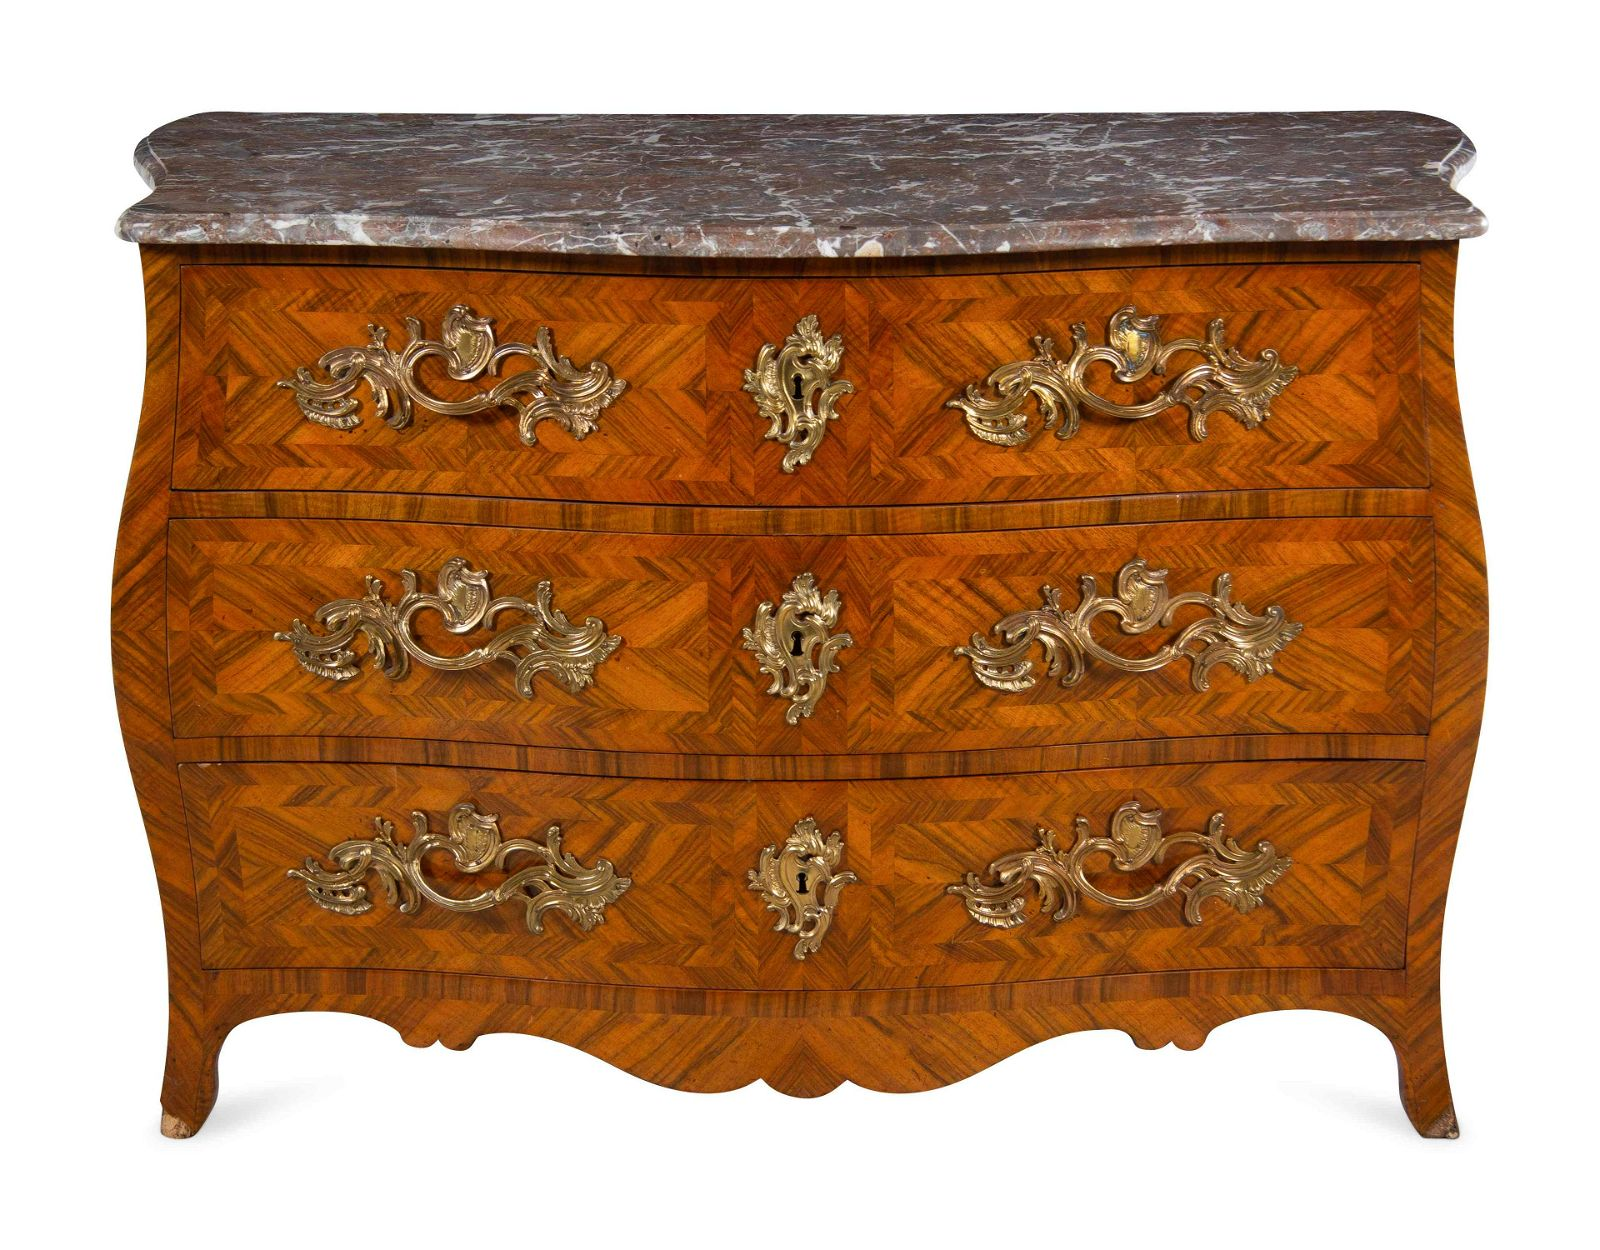 A Louis XV Gilt Bronze Mounted Parquetry Marble-Top